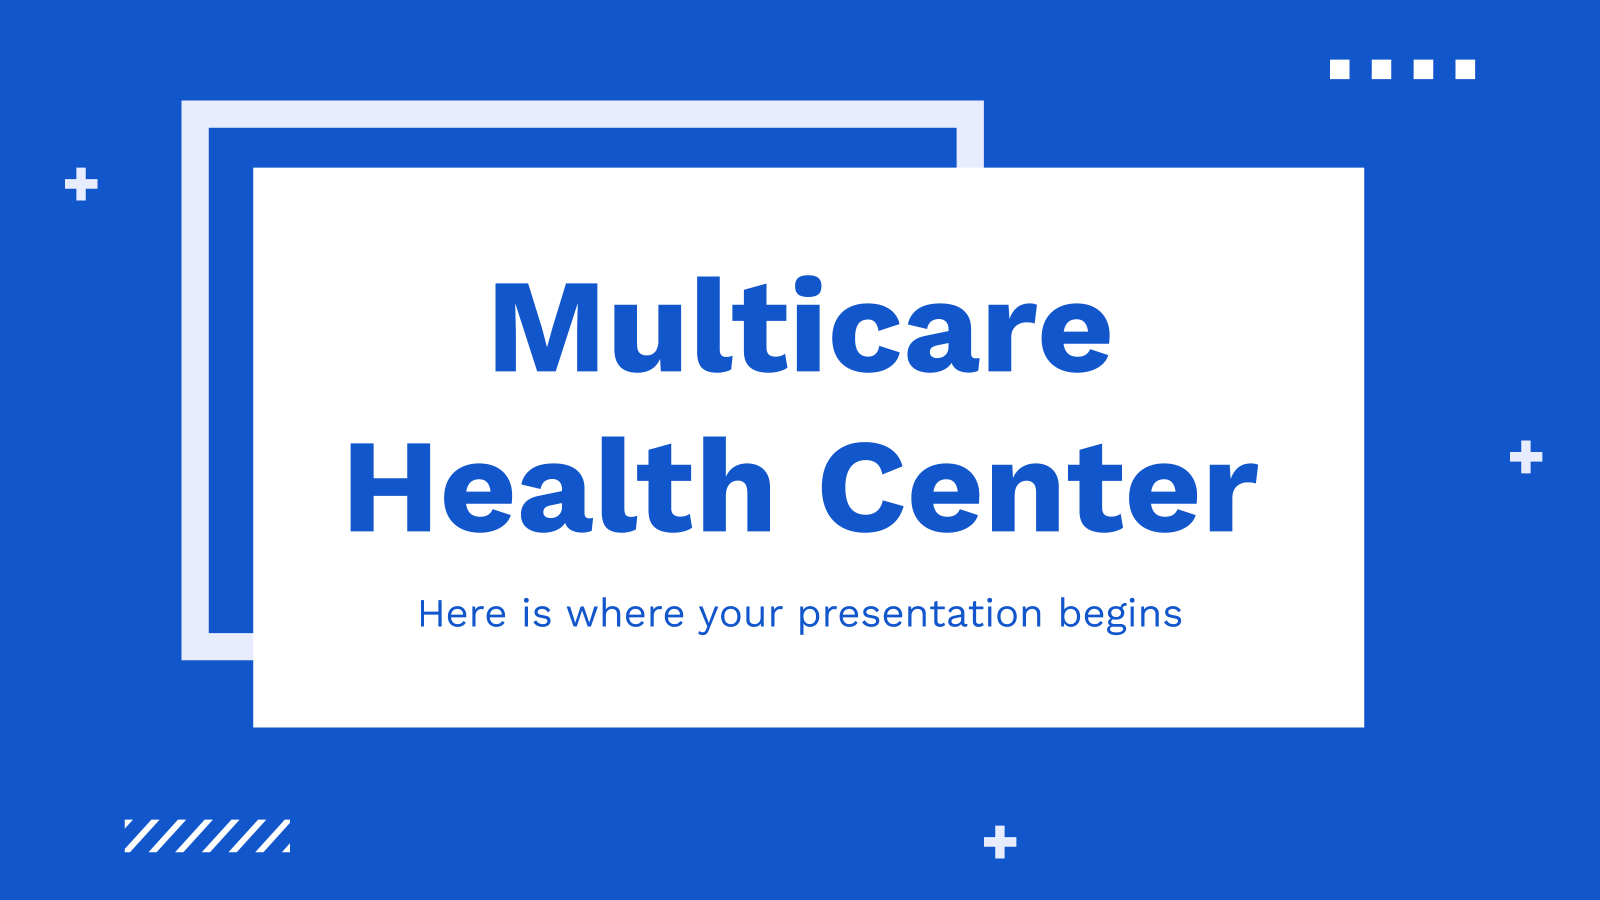 Multicare health center presentation template